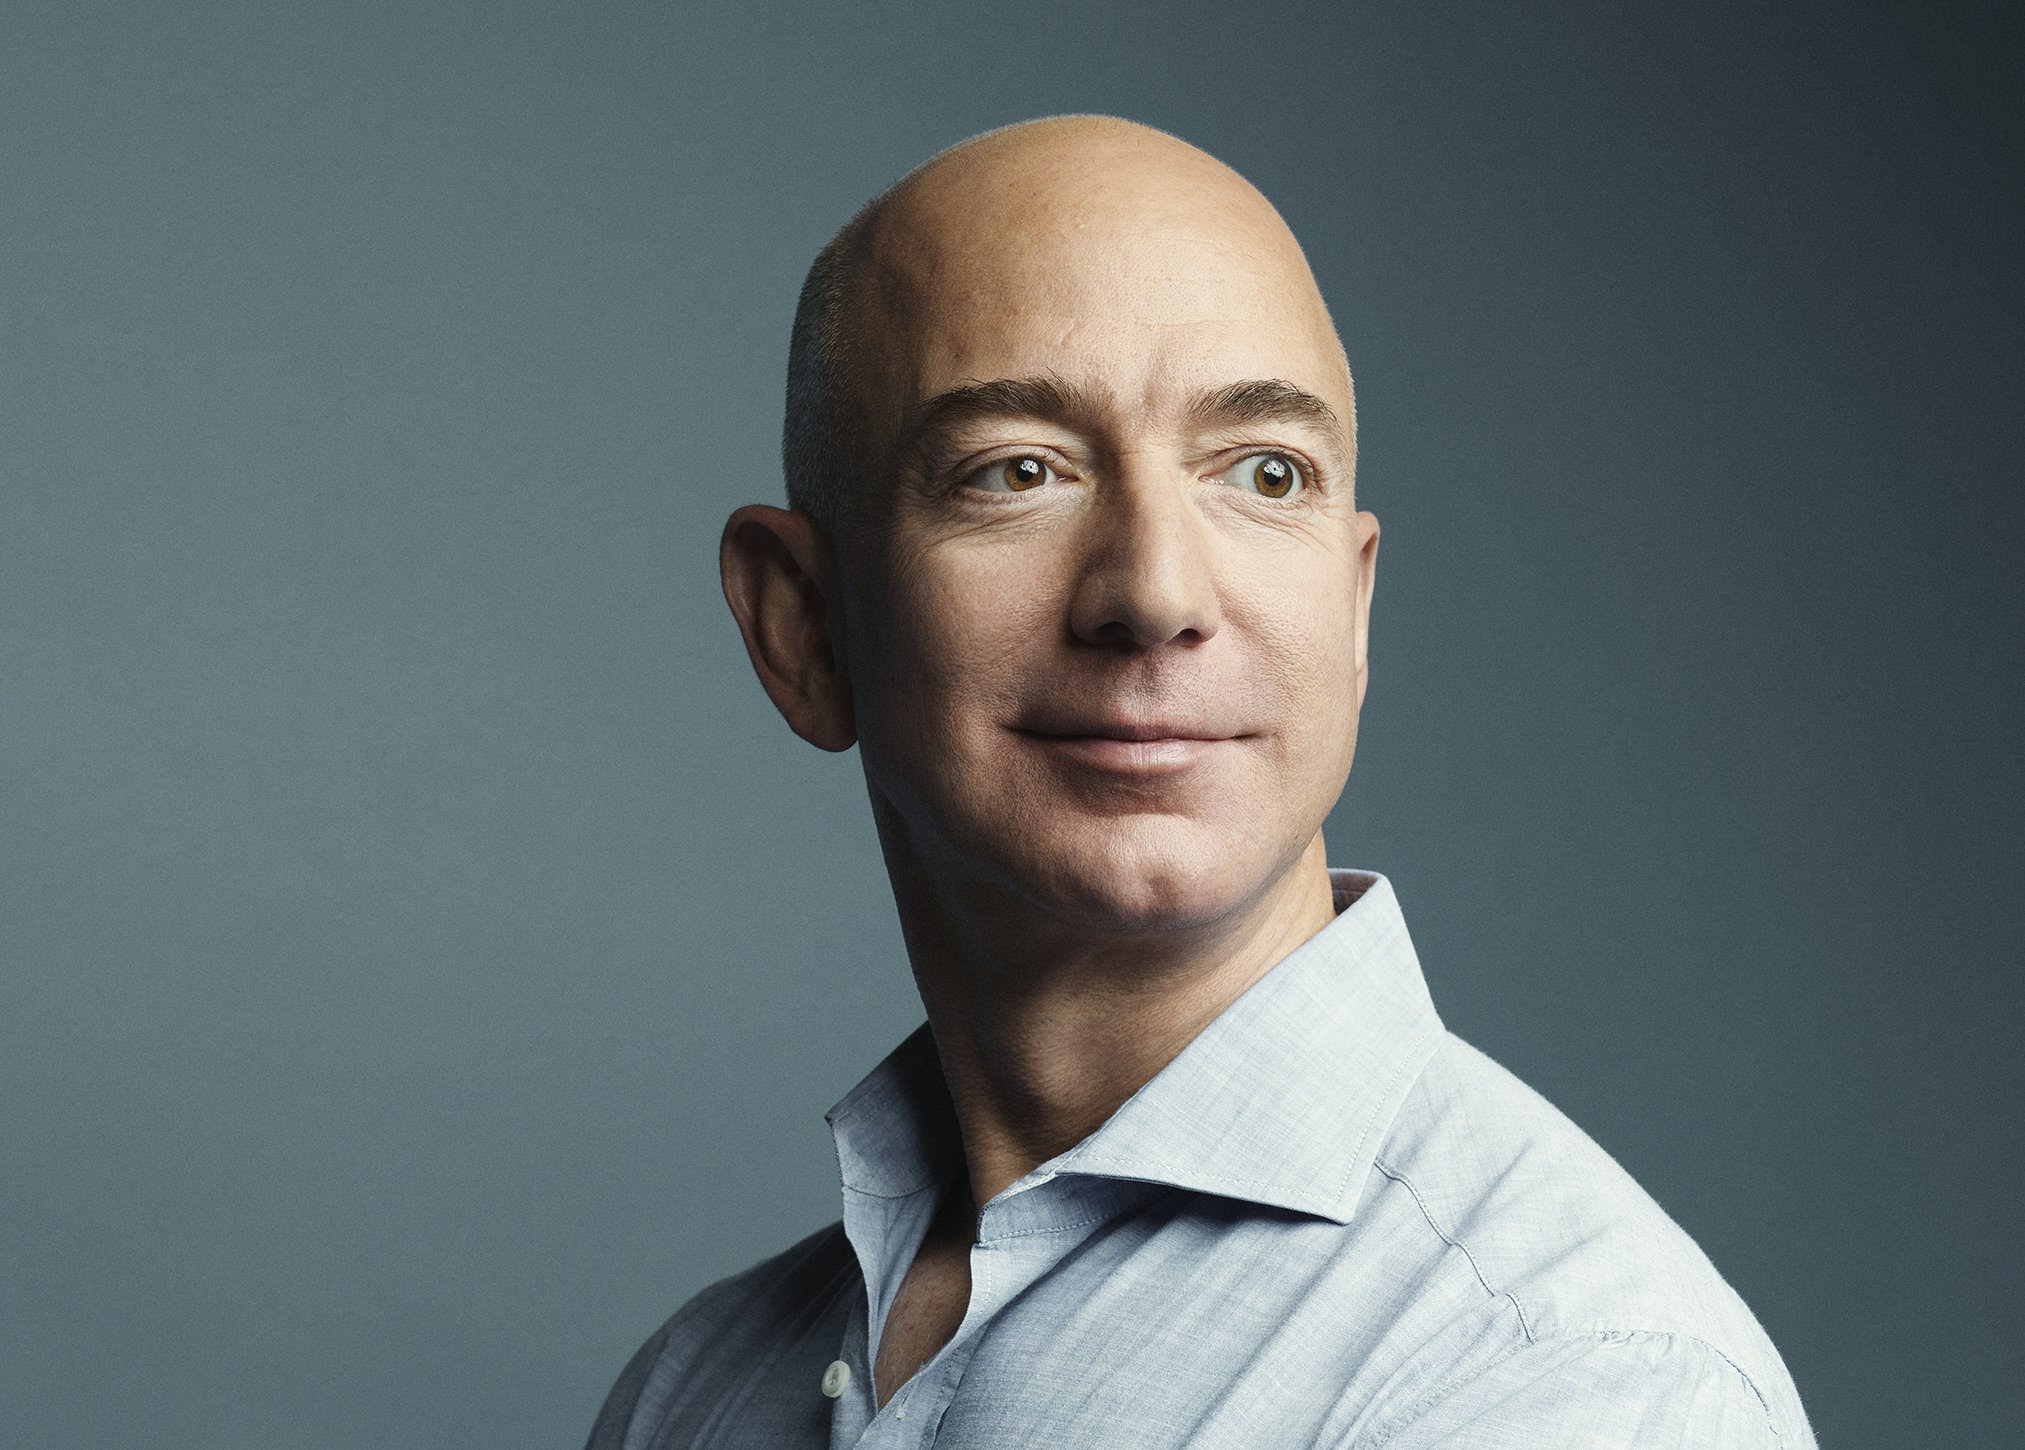 Another Richest Man Emerges, Replaces Bill Gates